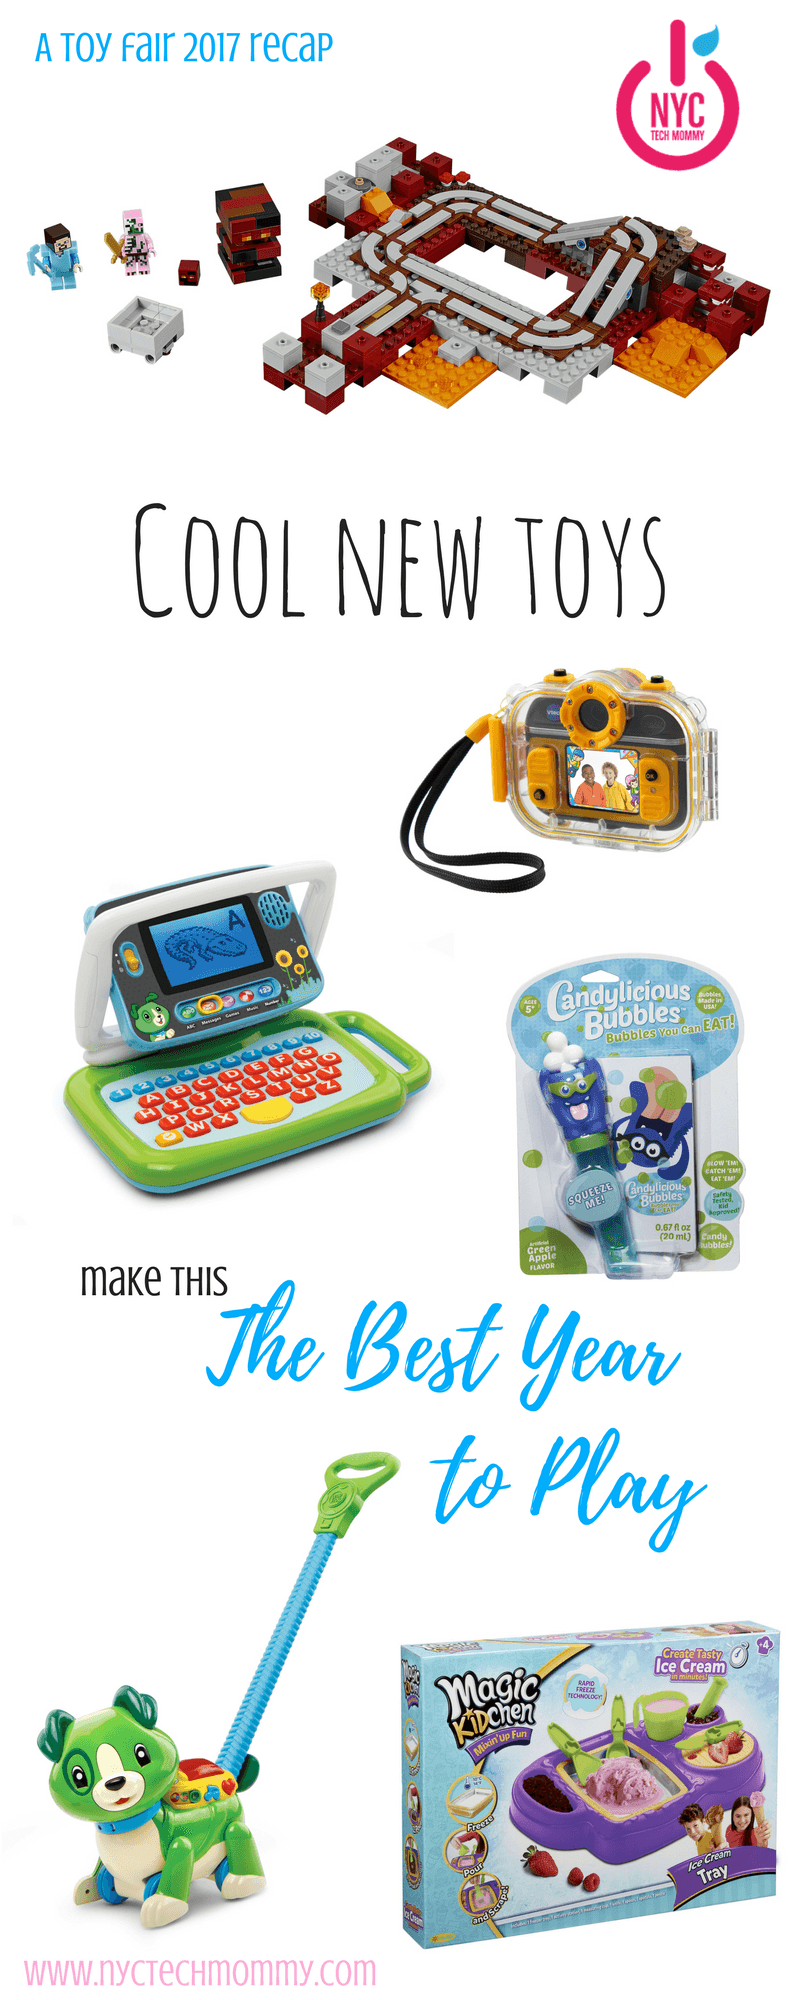 Want to know what toys your kids will be asking for this year? Toy Fair 2017 brought us the coolest new toys that will make this the best year to play! Check out which ones made my list!